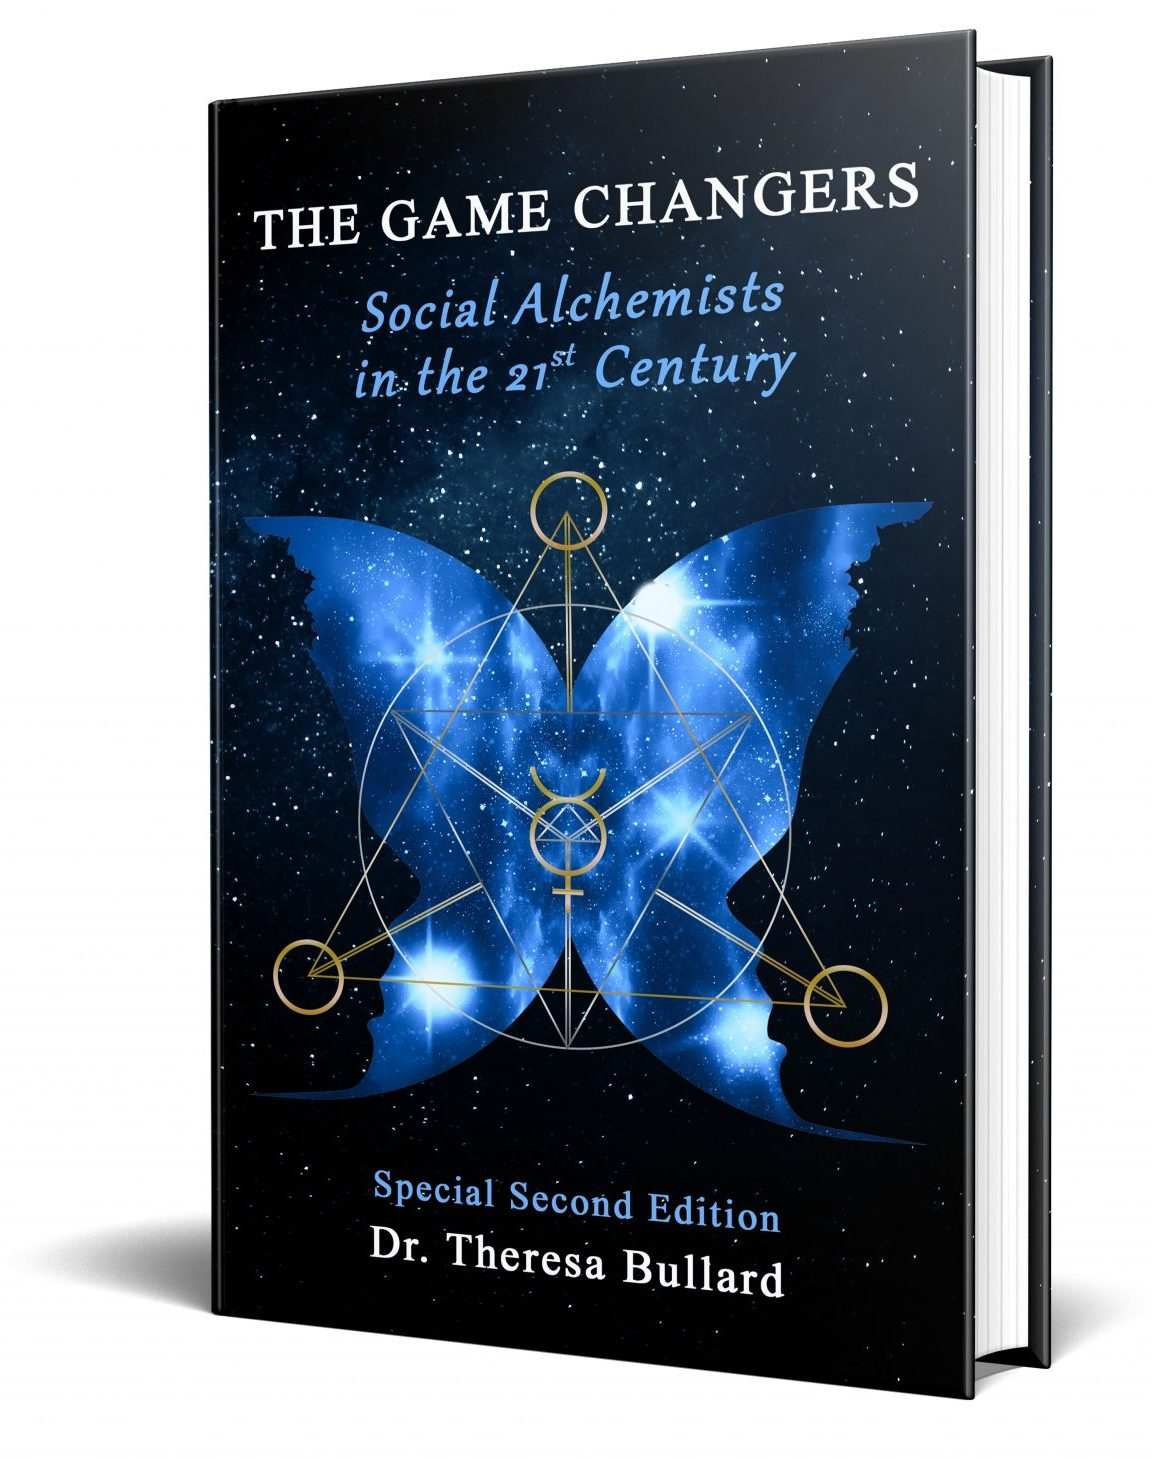 Book Cover Of Dr. Theresa's Game Changers Book